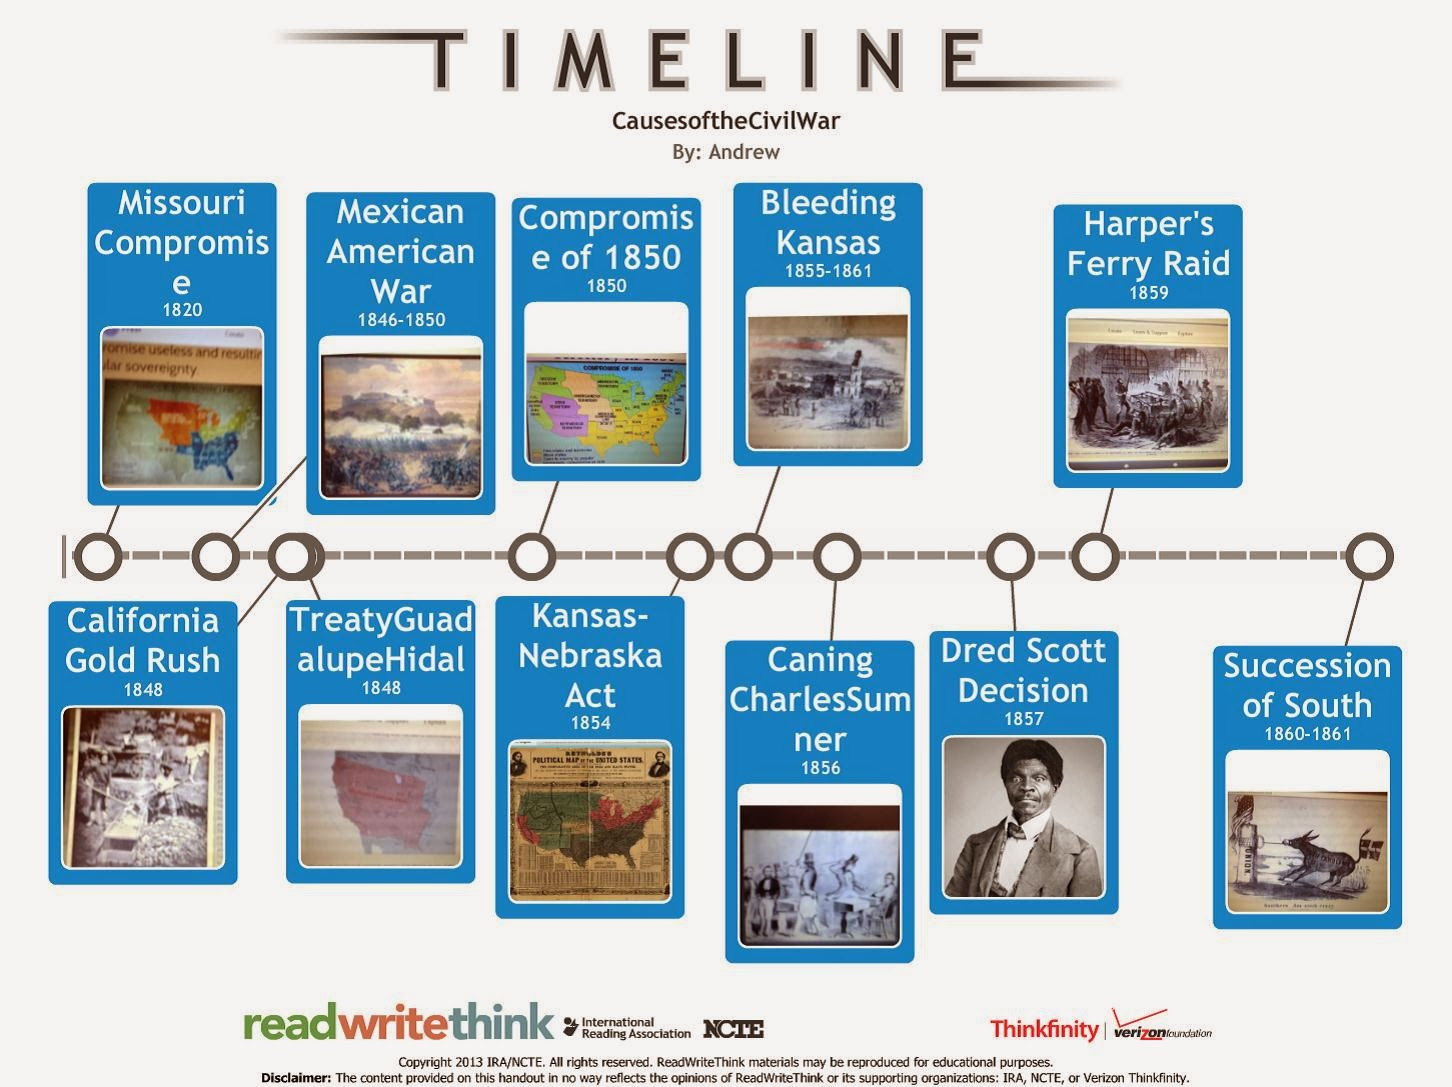 my history 10 blog causes of the civil war research project we also viewed other groups projects and used the information to compile a timeline of the events that led up to the civil war the timeline is below